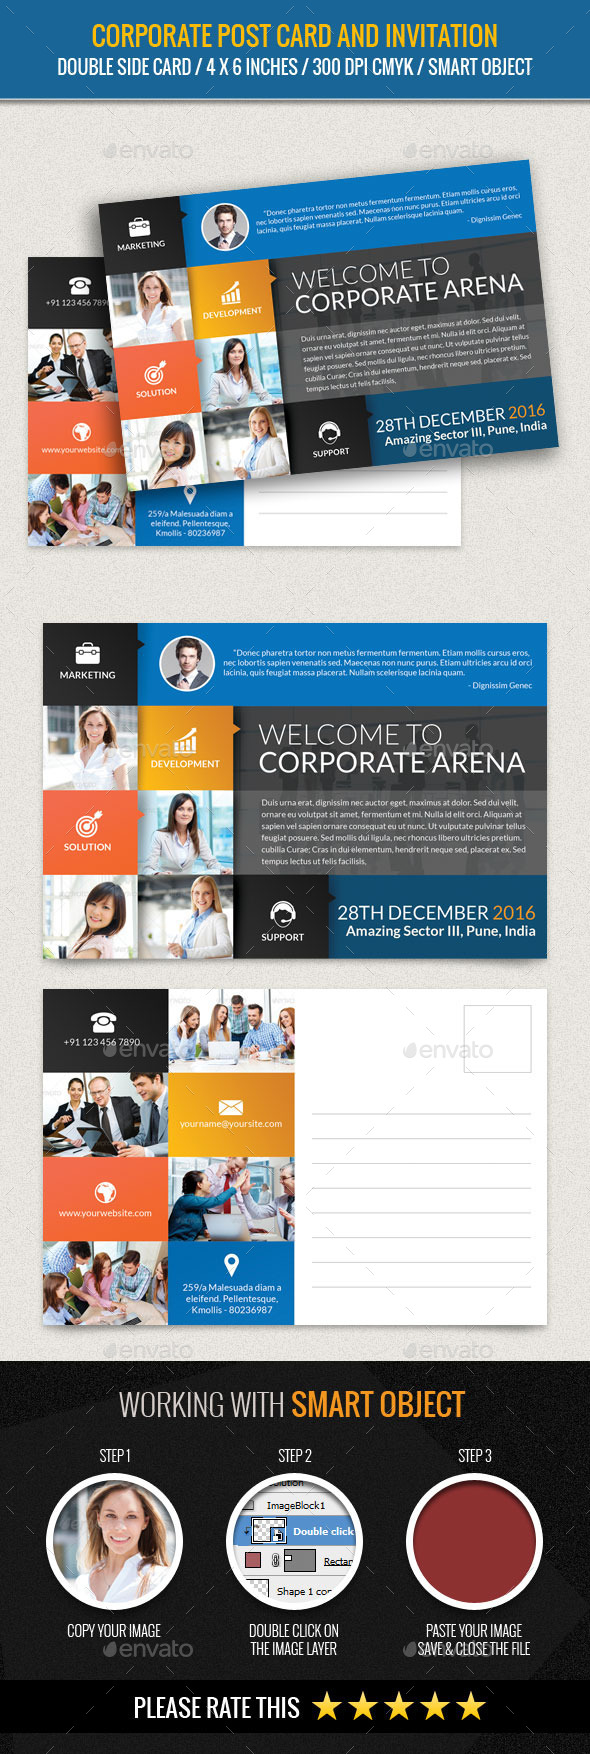 Corporate and Business Post Card Template - Cards & Invites Print Templates